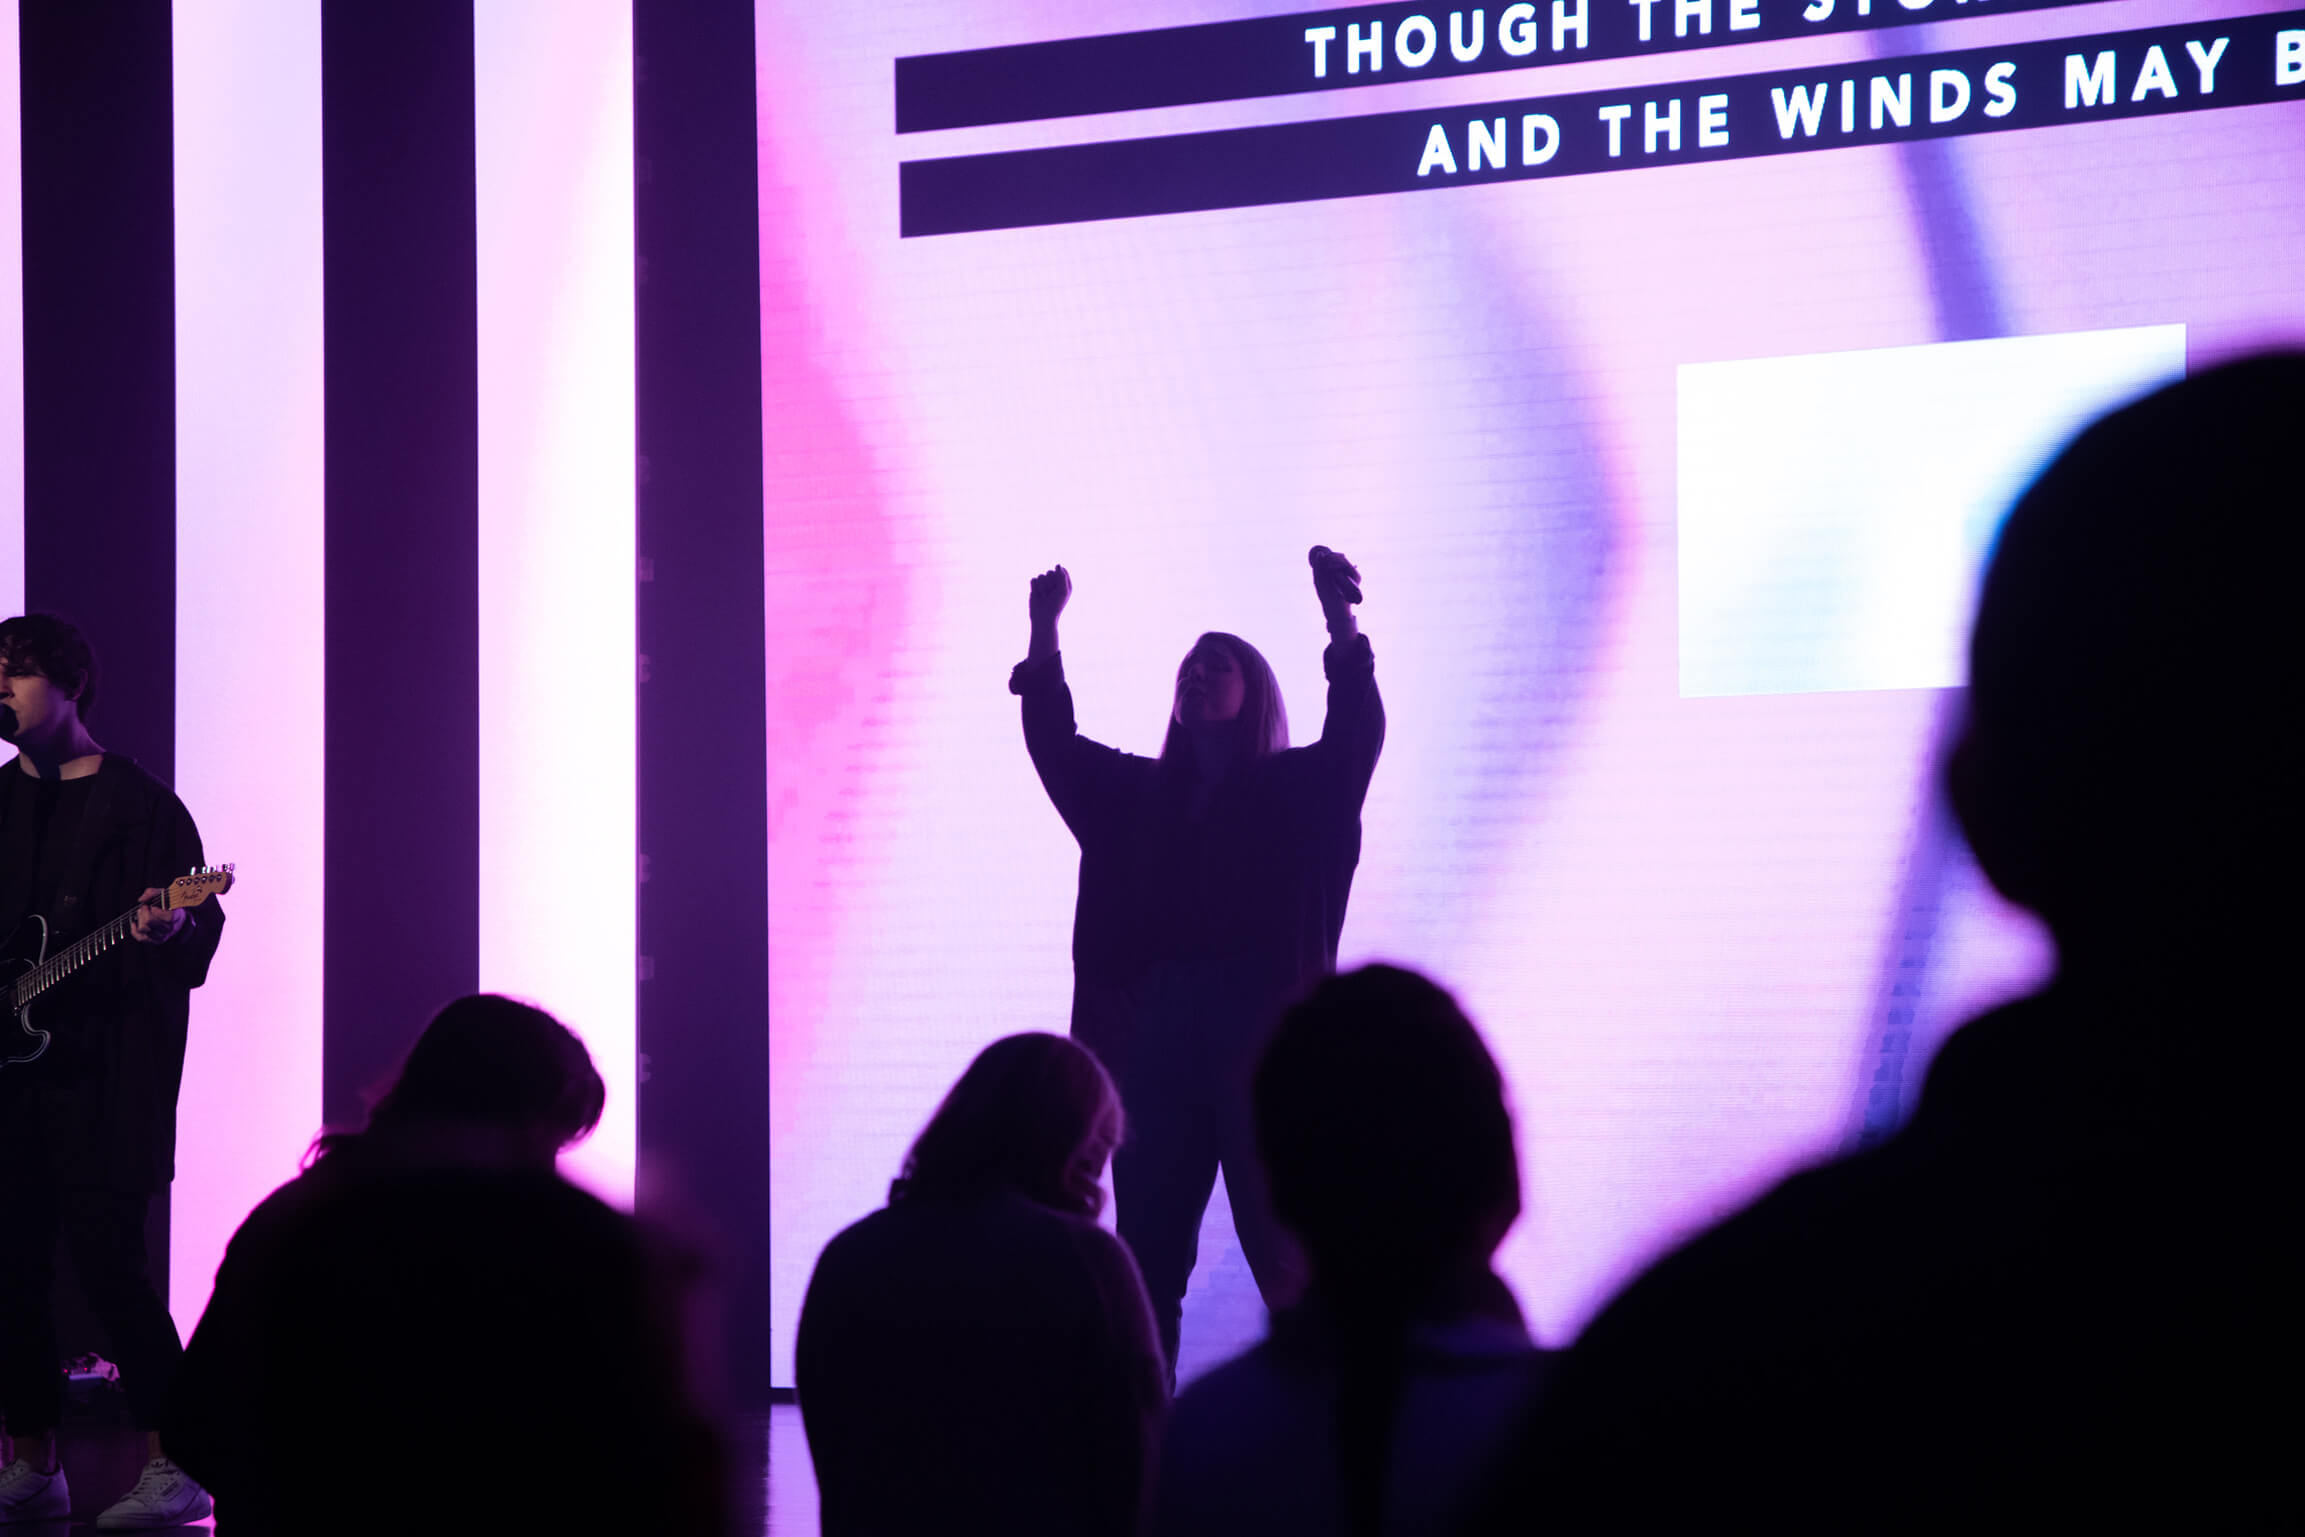 A worship leader with both arms raised on stage.